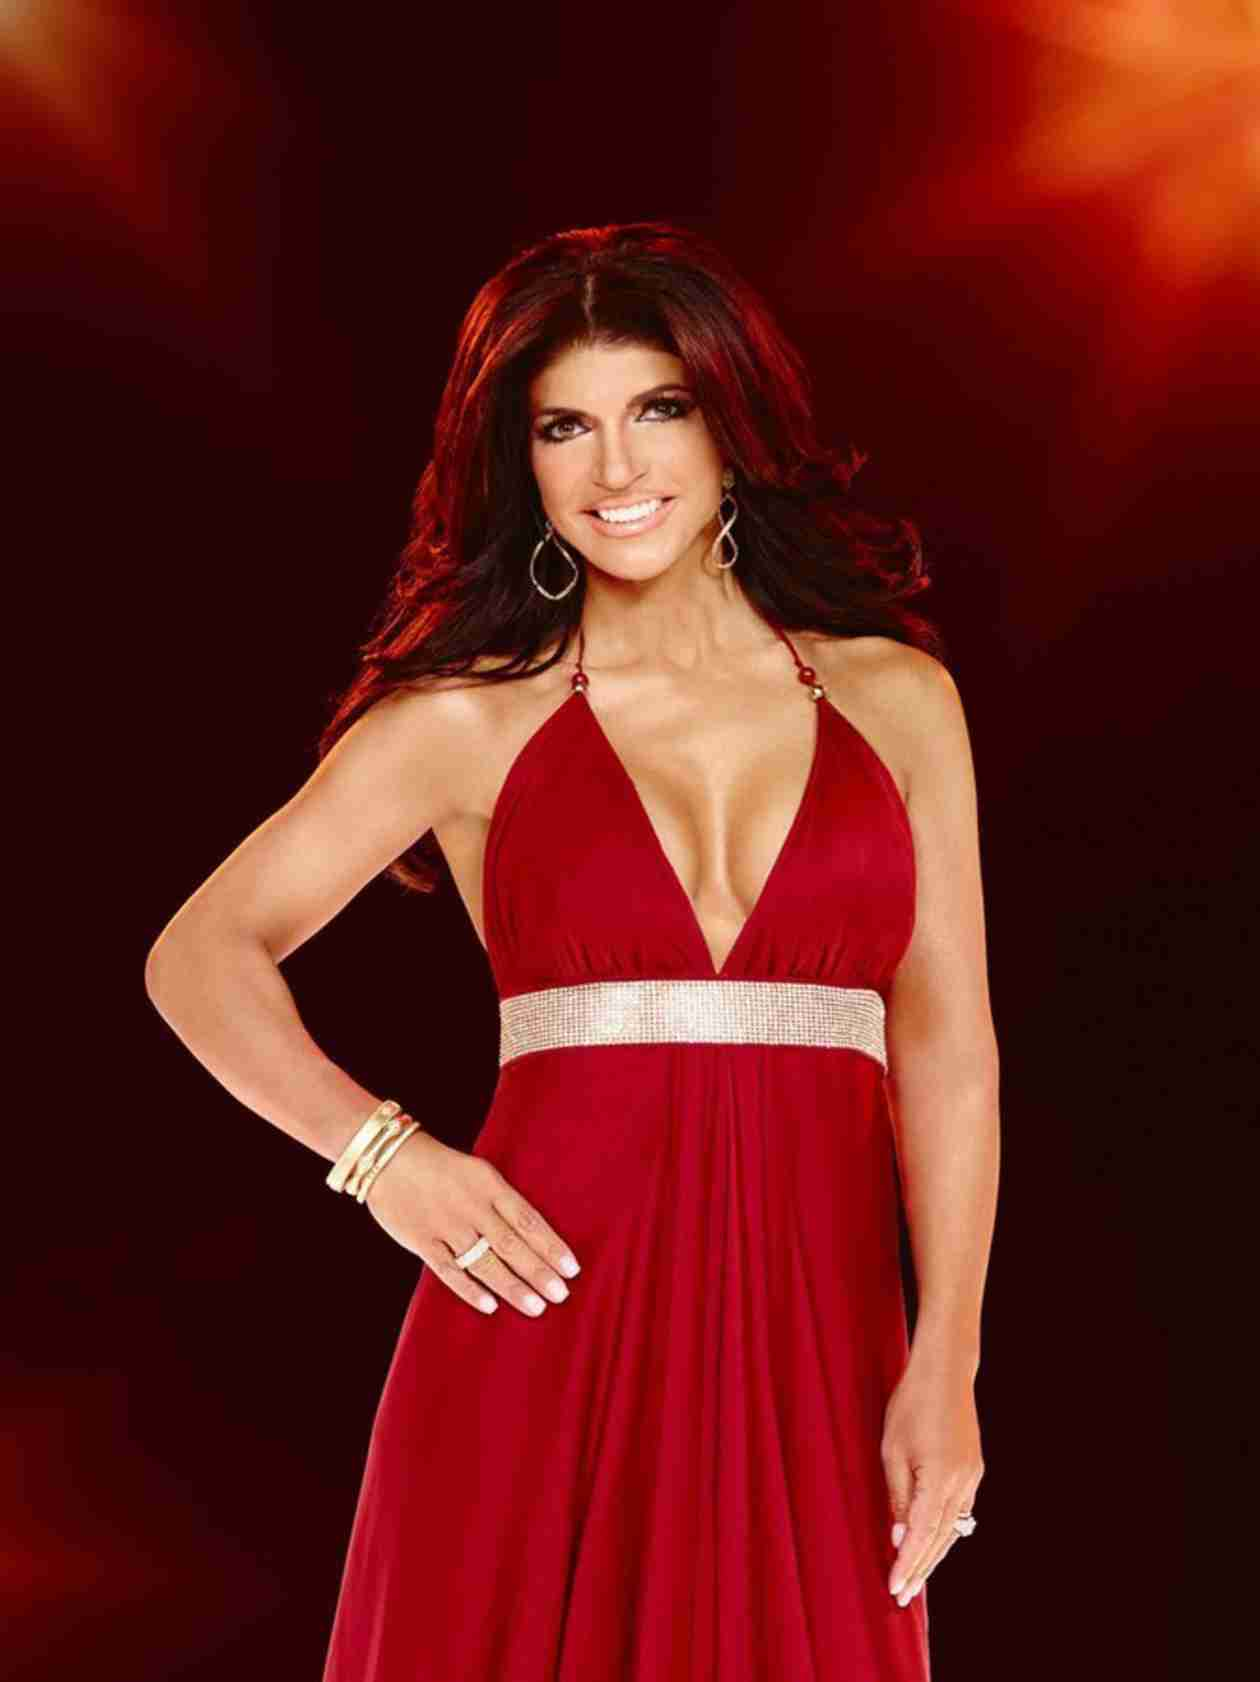 Teresa Giudice Dedicates RHONJ Blog to Father-in-Law, Talks Stressful Year